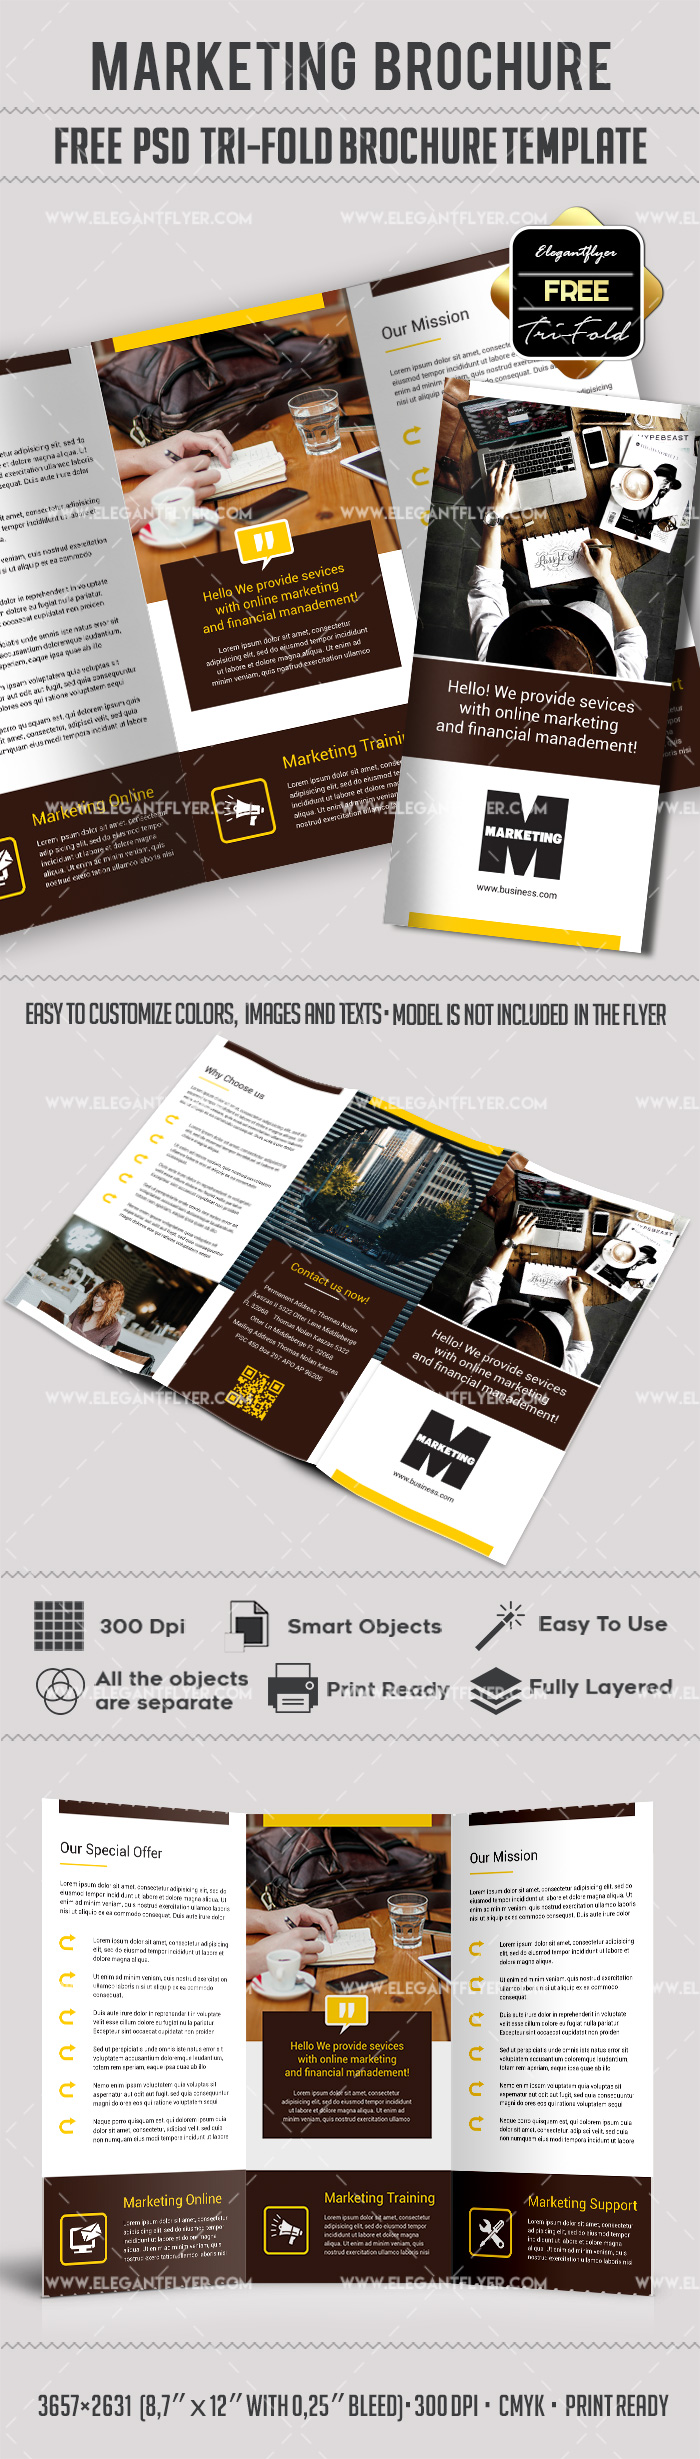 free tri fold brochure template - marketing free tri fold psd brochure template by